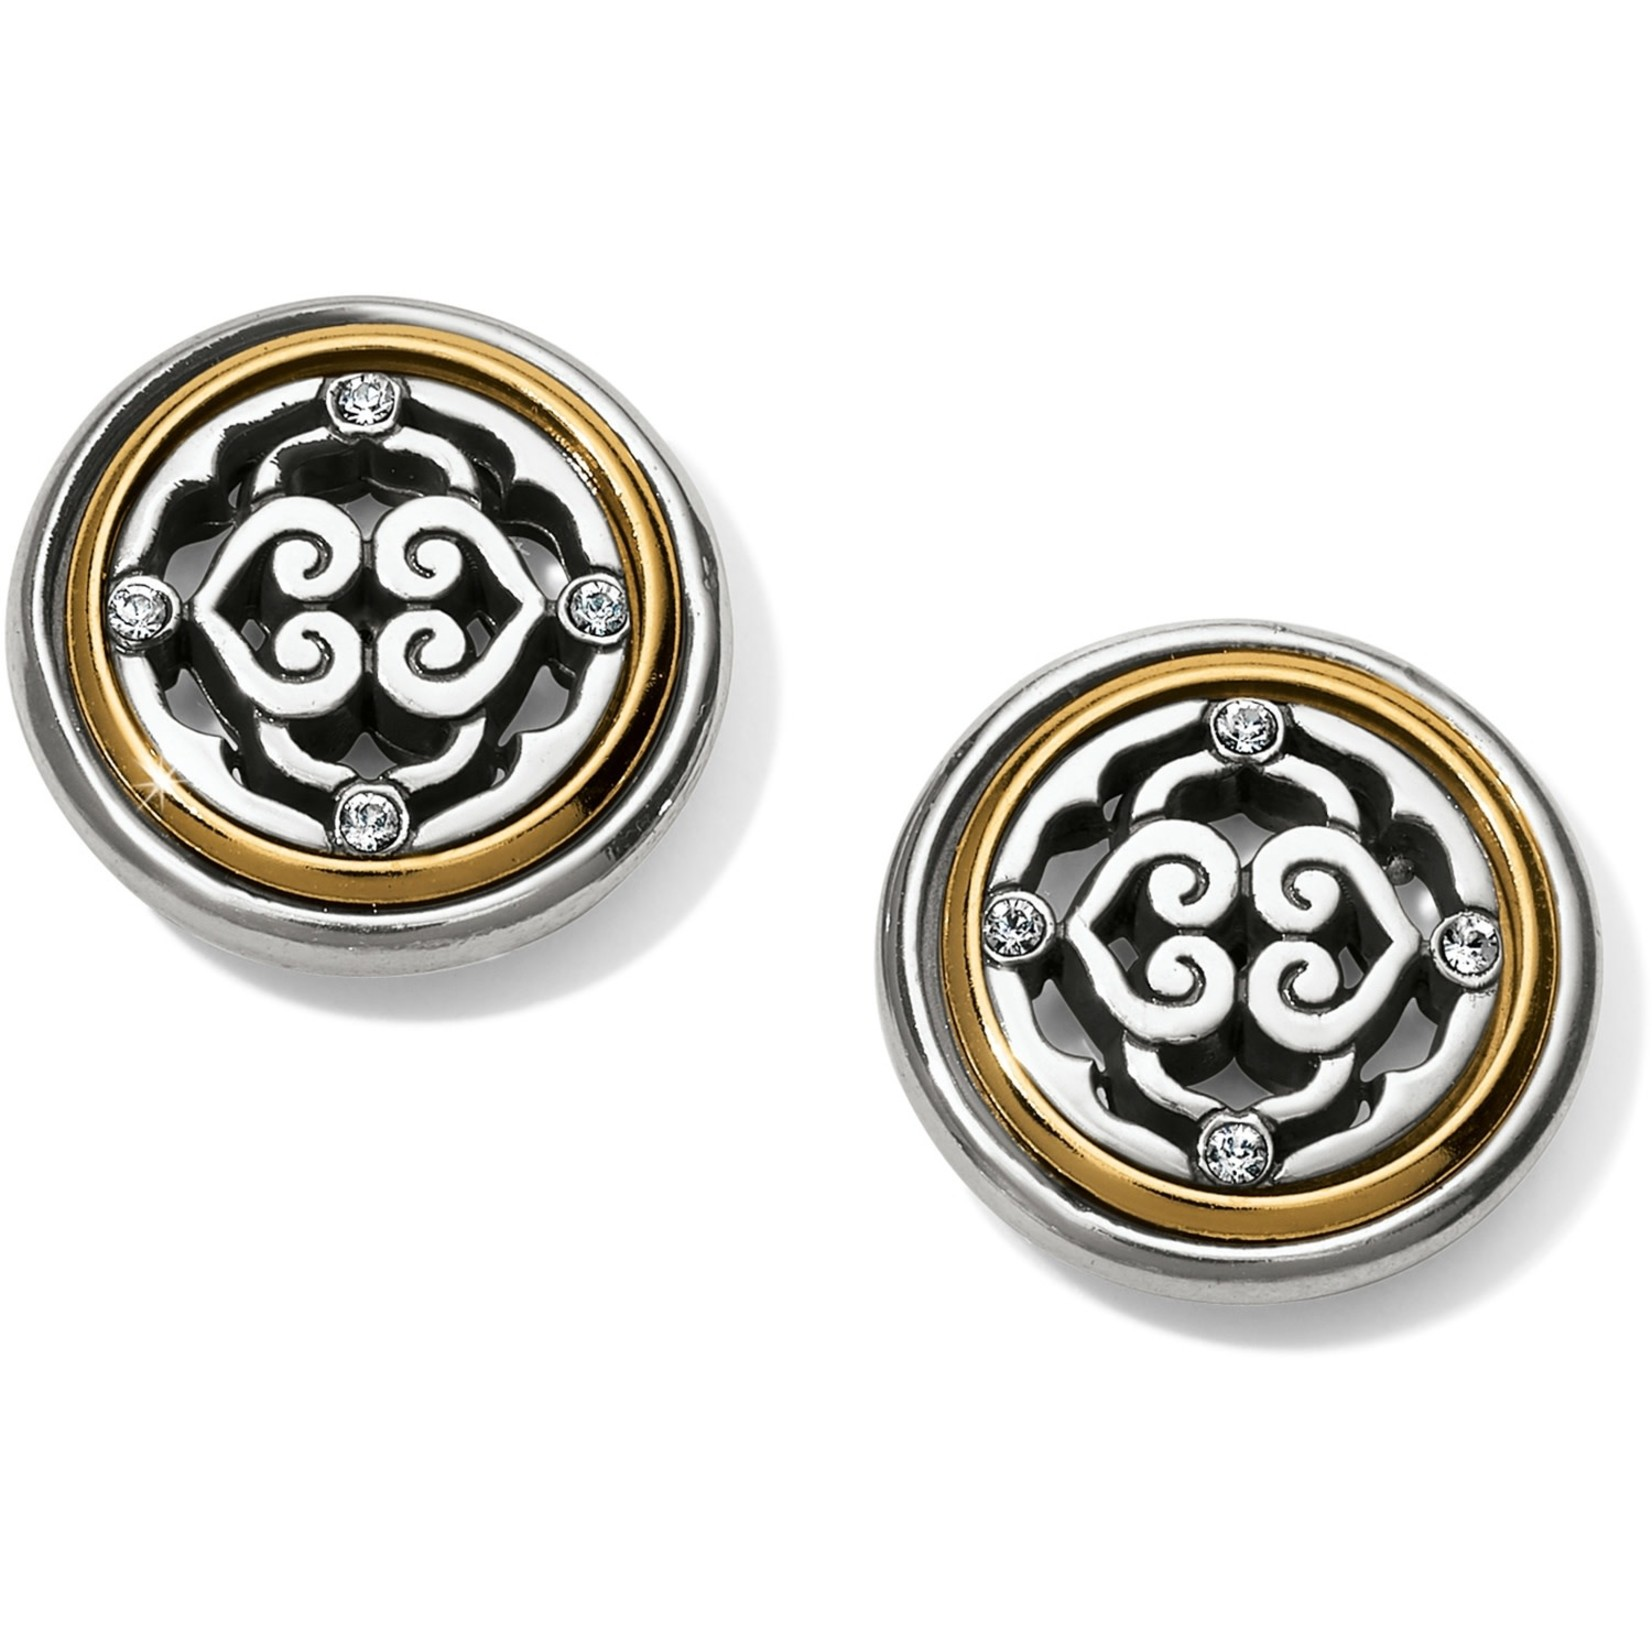 Brighton JA4652 Intrigue Post Earrings